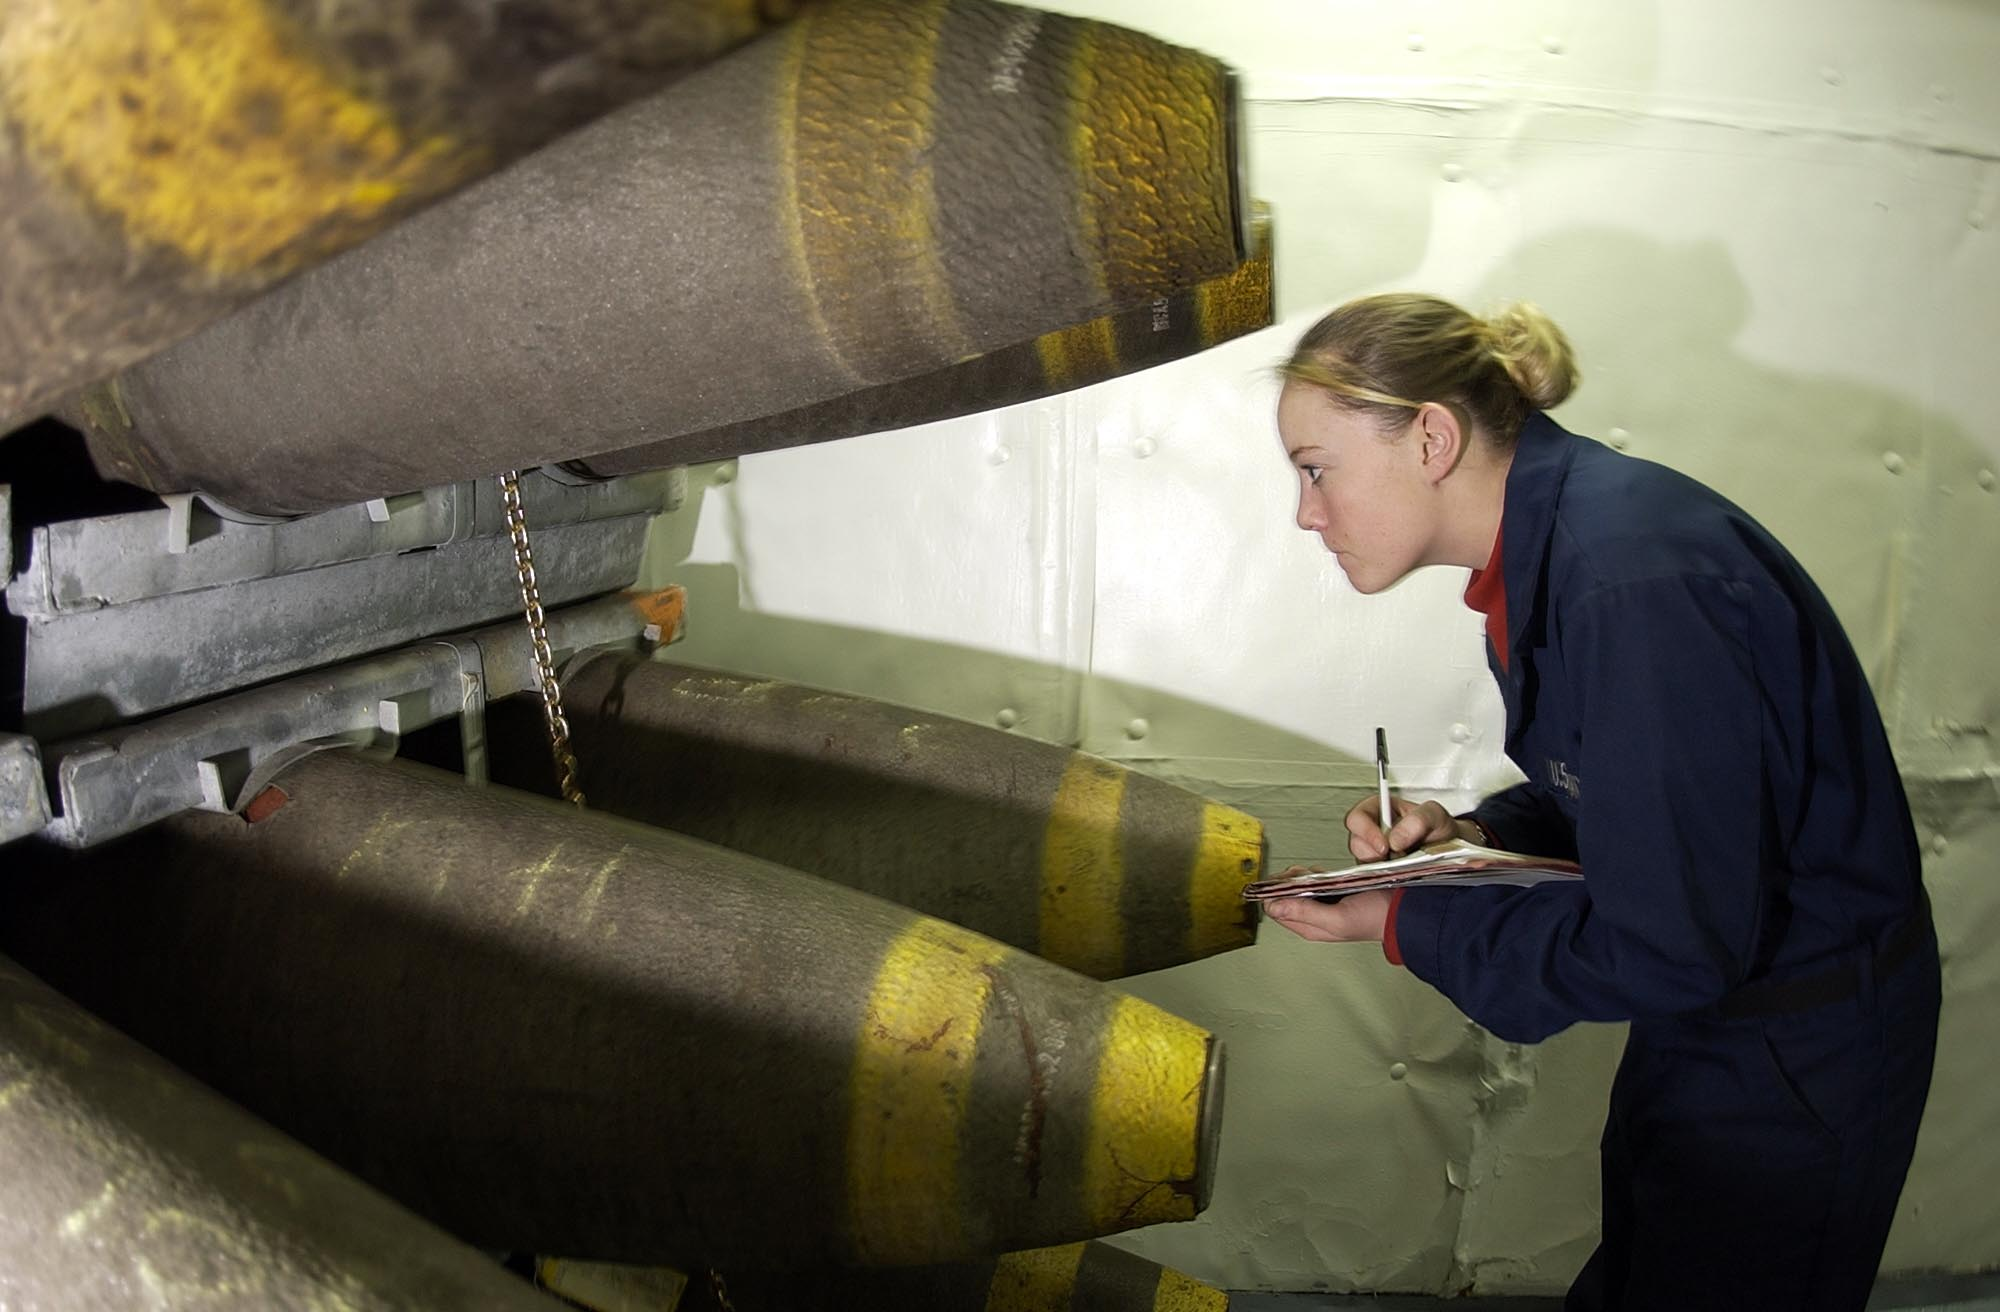 File:US Navy 050119-N-5464G-021 Airman Candice Bell, from ...